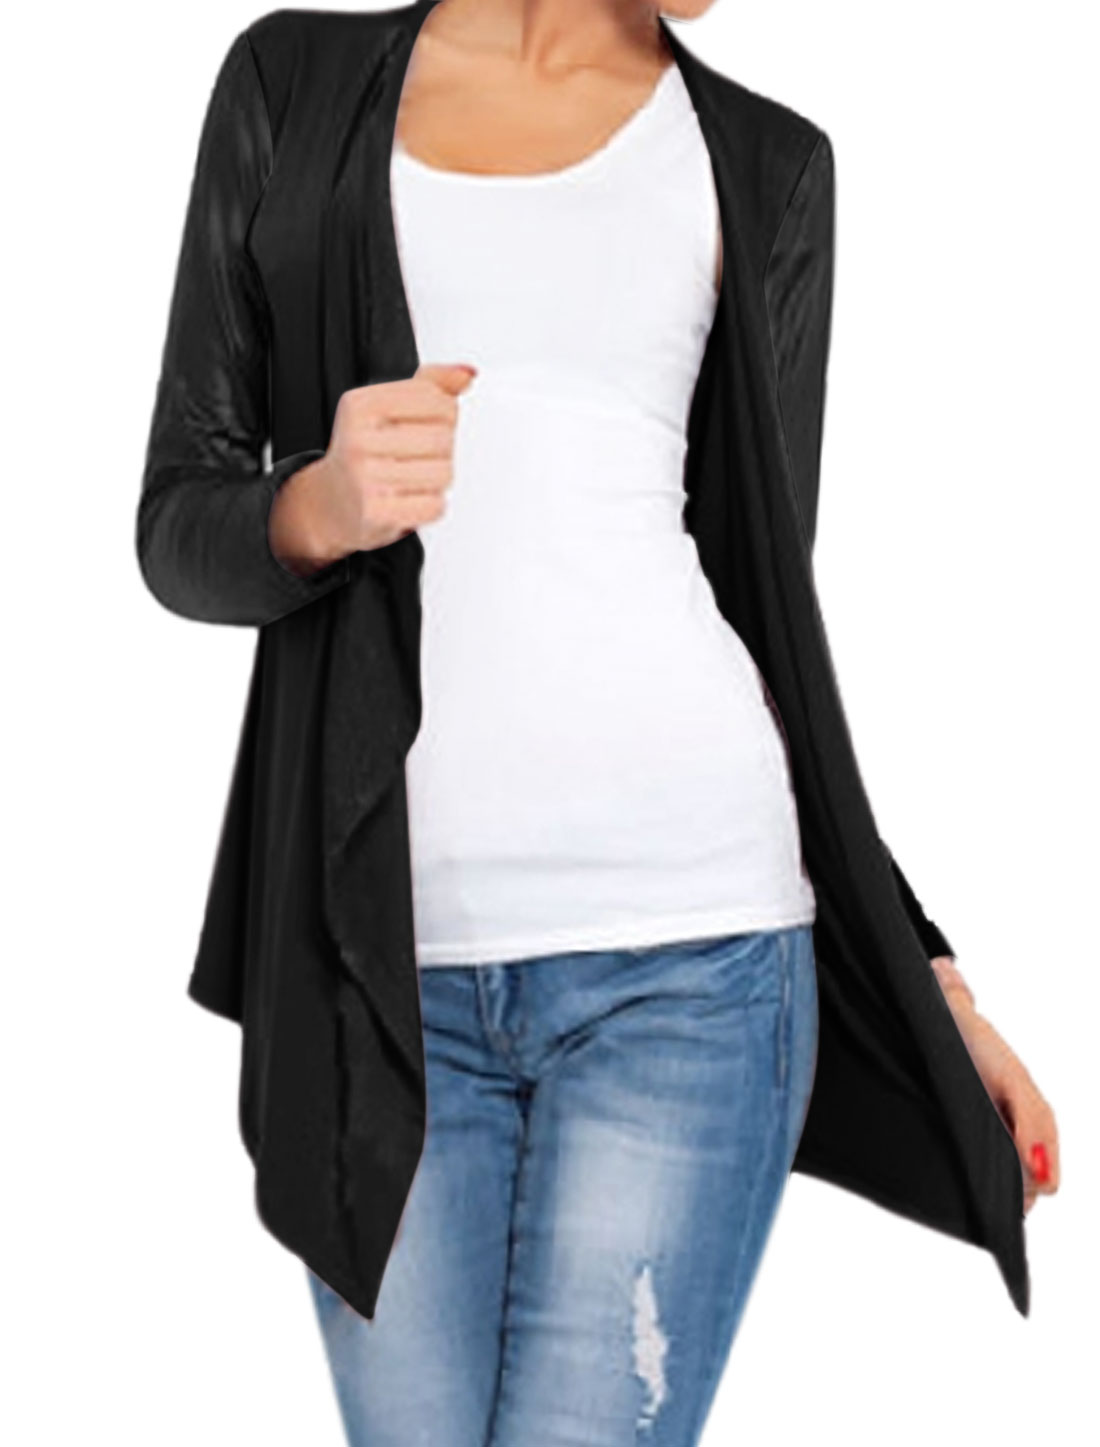 Lady Long Sleeves Front Opening PU Panel Leisure Cardigan Black M